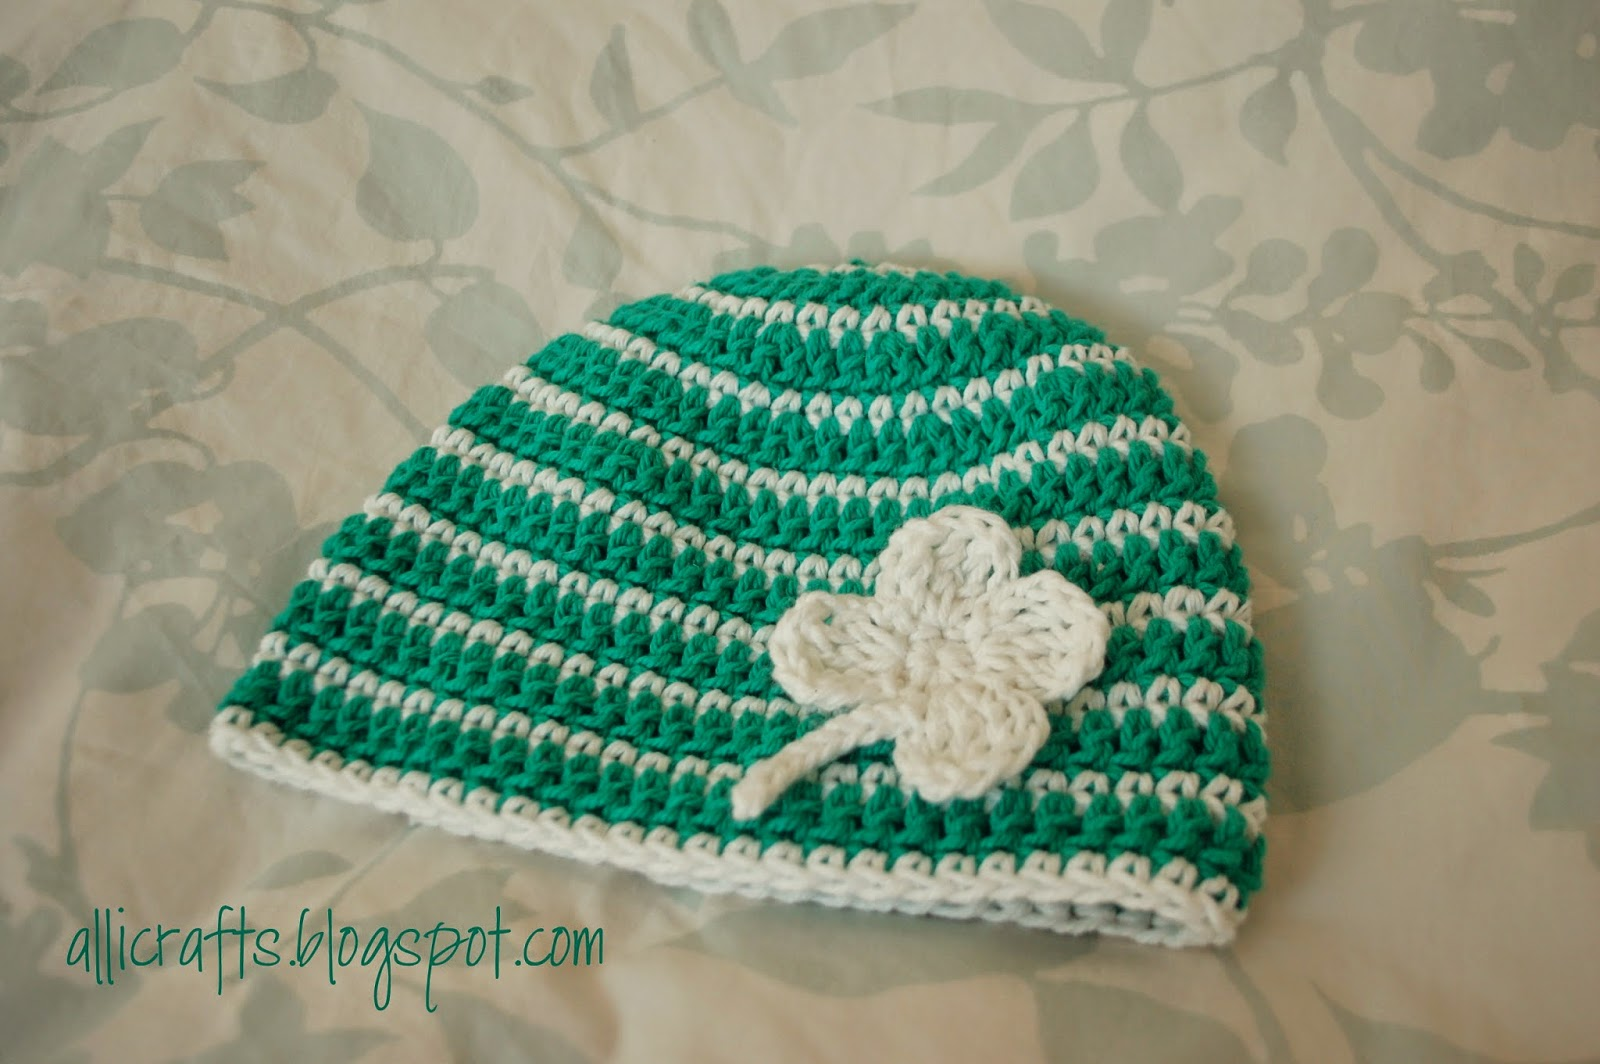 Alli Crafts: Free Pattern: Thick and Thin Striped Beanie - 9-12 months